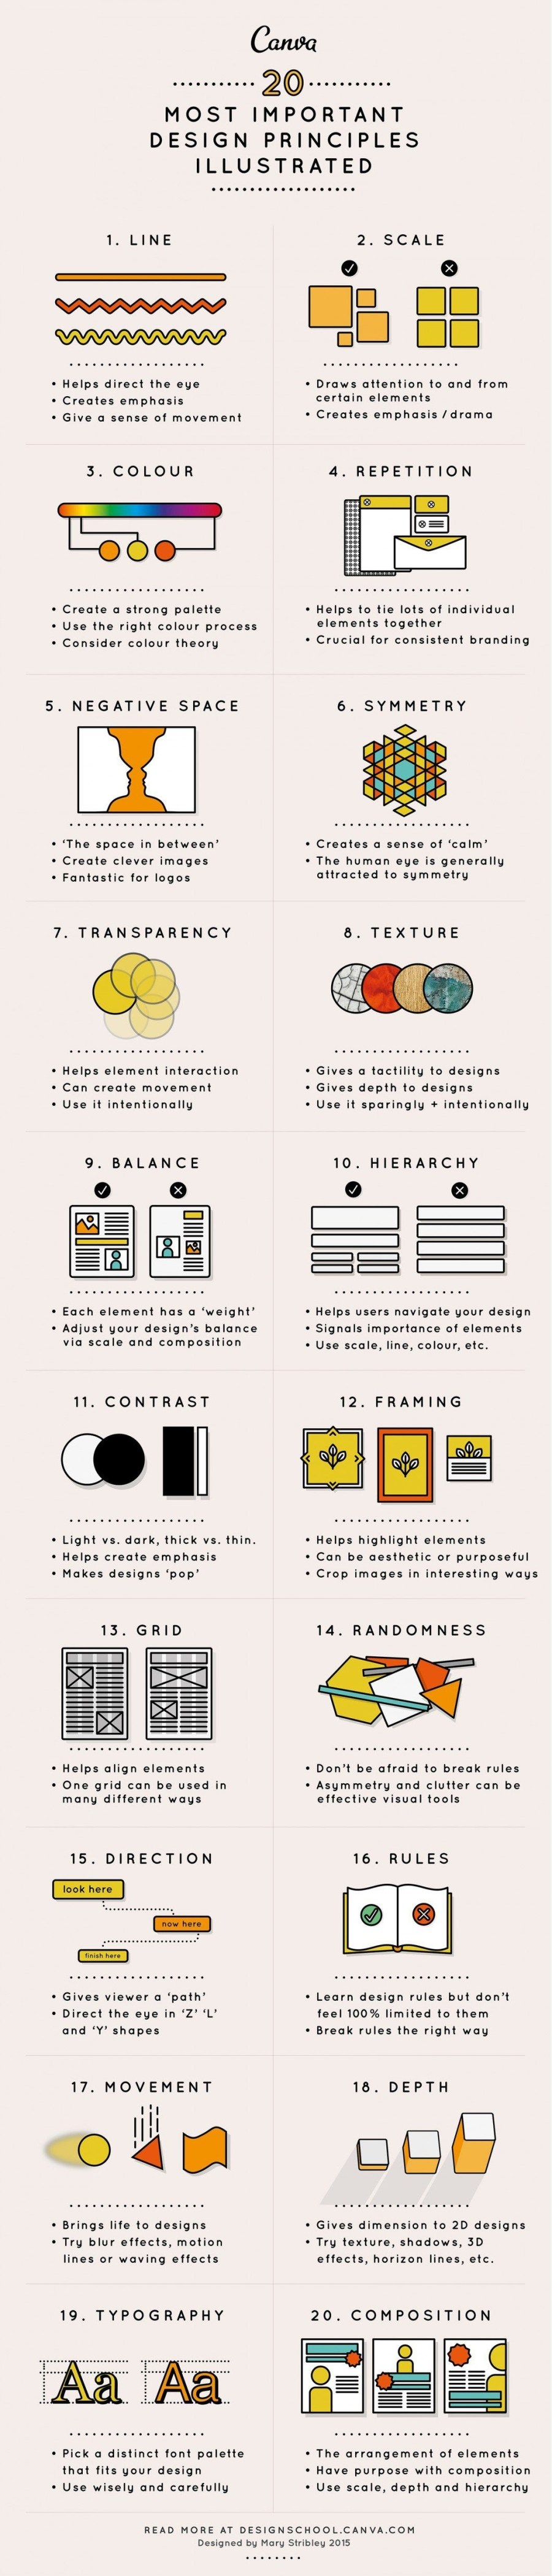 The 20 Most Important Design Principles Illustrated [Infographic] | Social Media Today